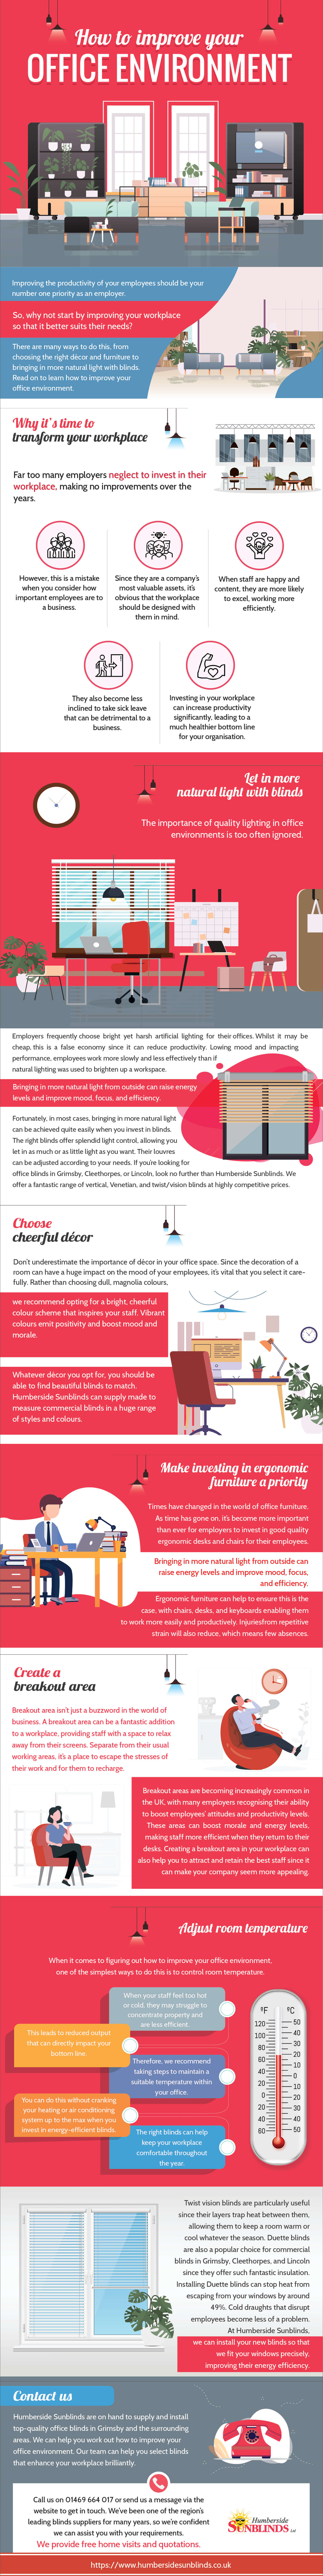 How to improve your office environment 1